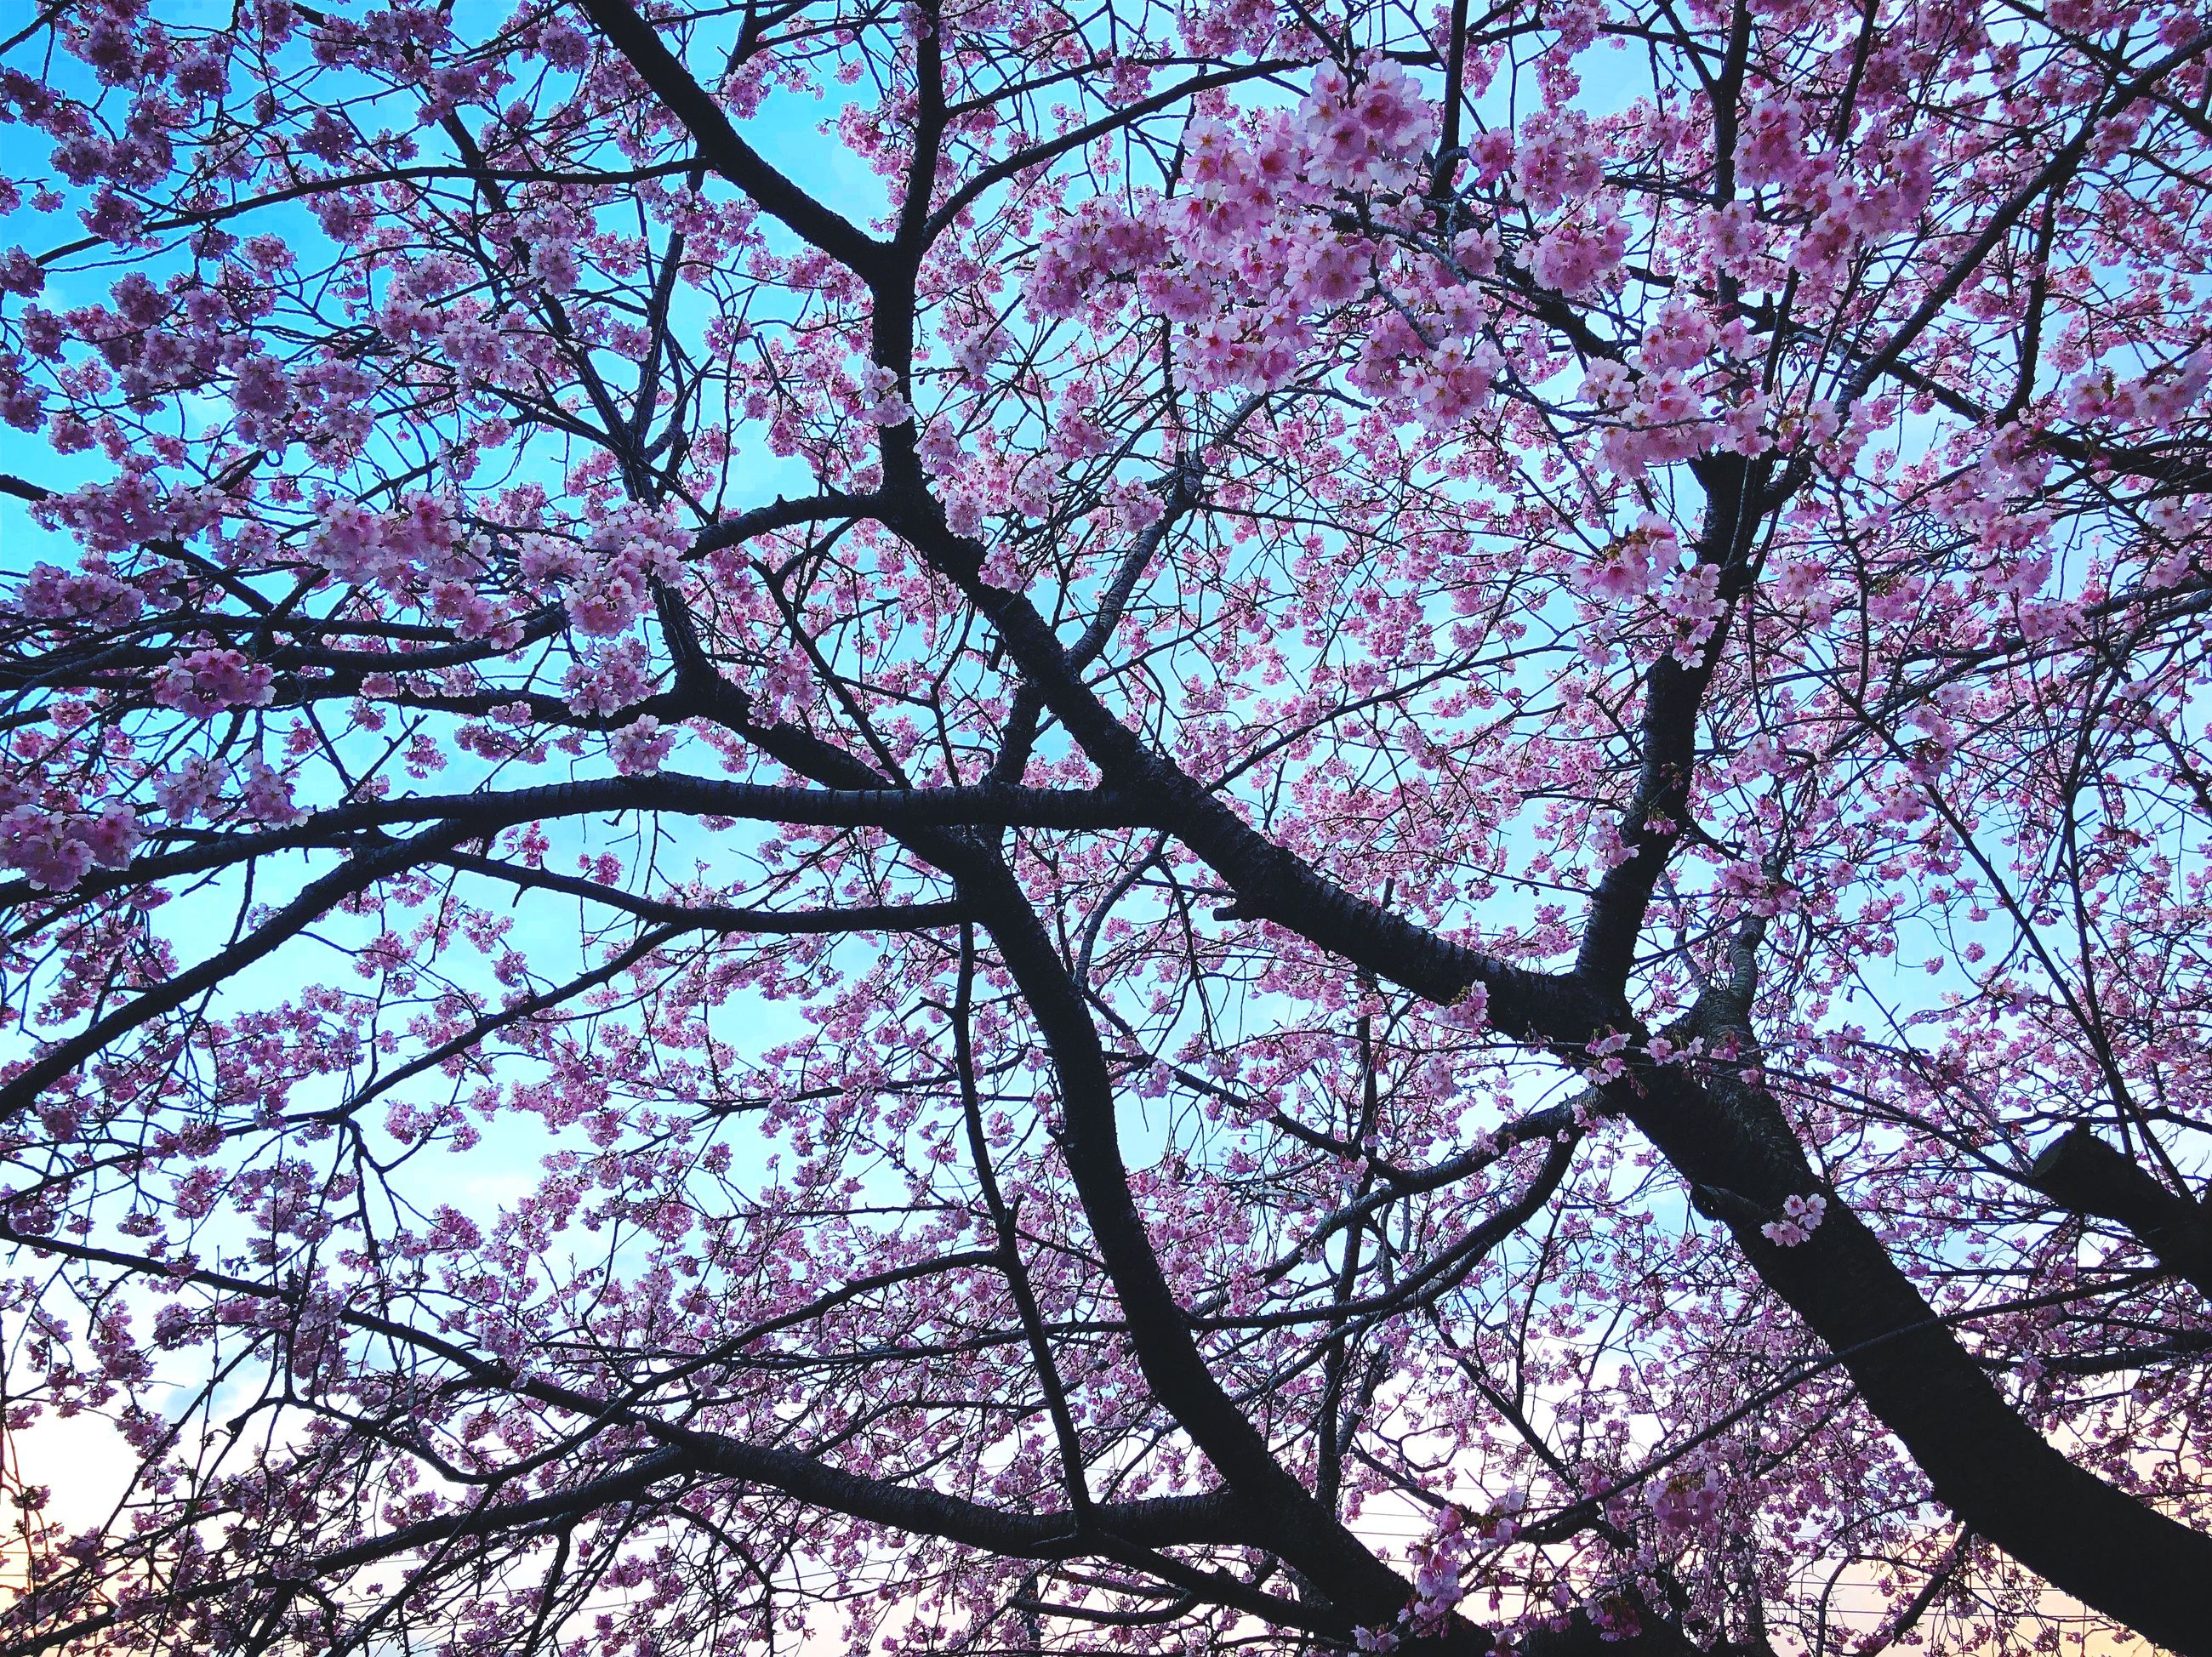 tree, branch, plant, low angle view, blossom, flower, pink color, growth, flowering plant, springtime, beauty in nature, nature, no people, cherry blossom, sky, day, fragility, freshness, cherry tree, outdoors, spring, tree canopy